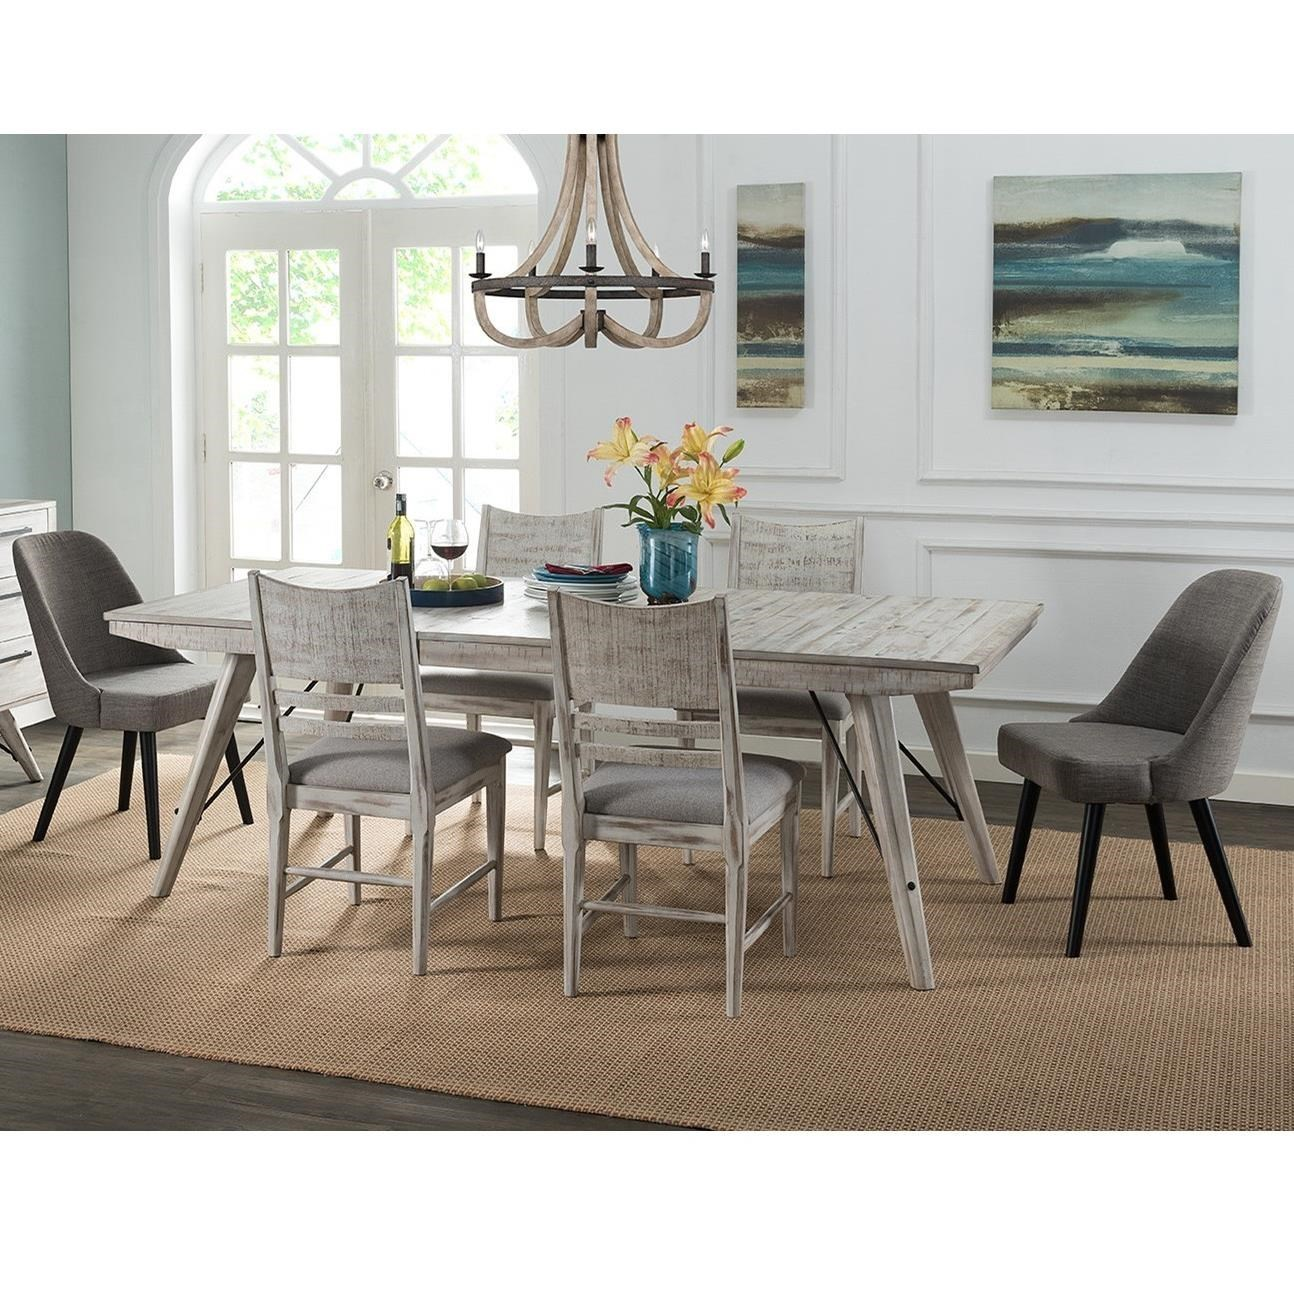 Intercon Modern Rustic 7 Piece Table And Chair Set